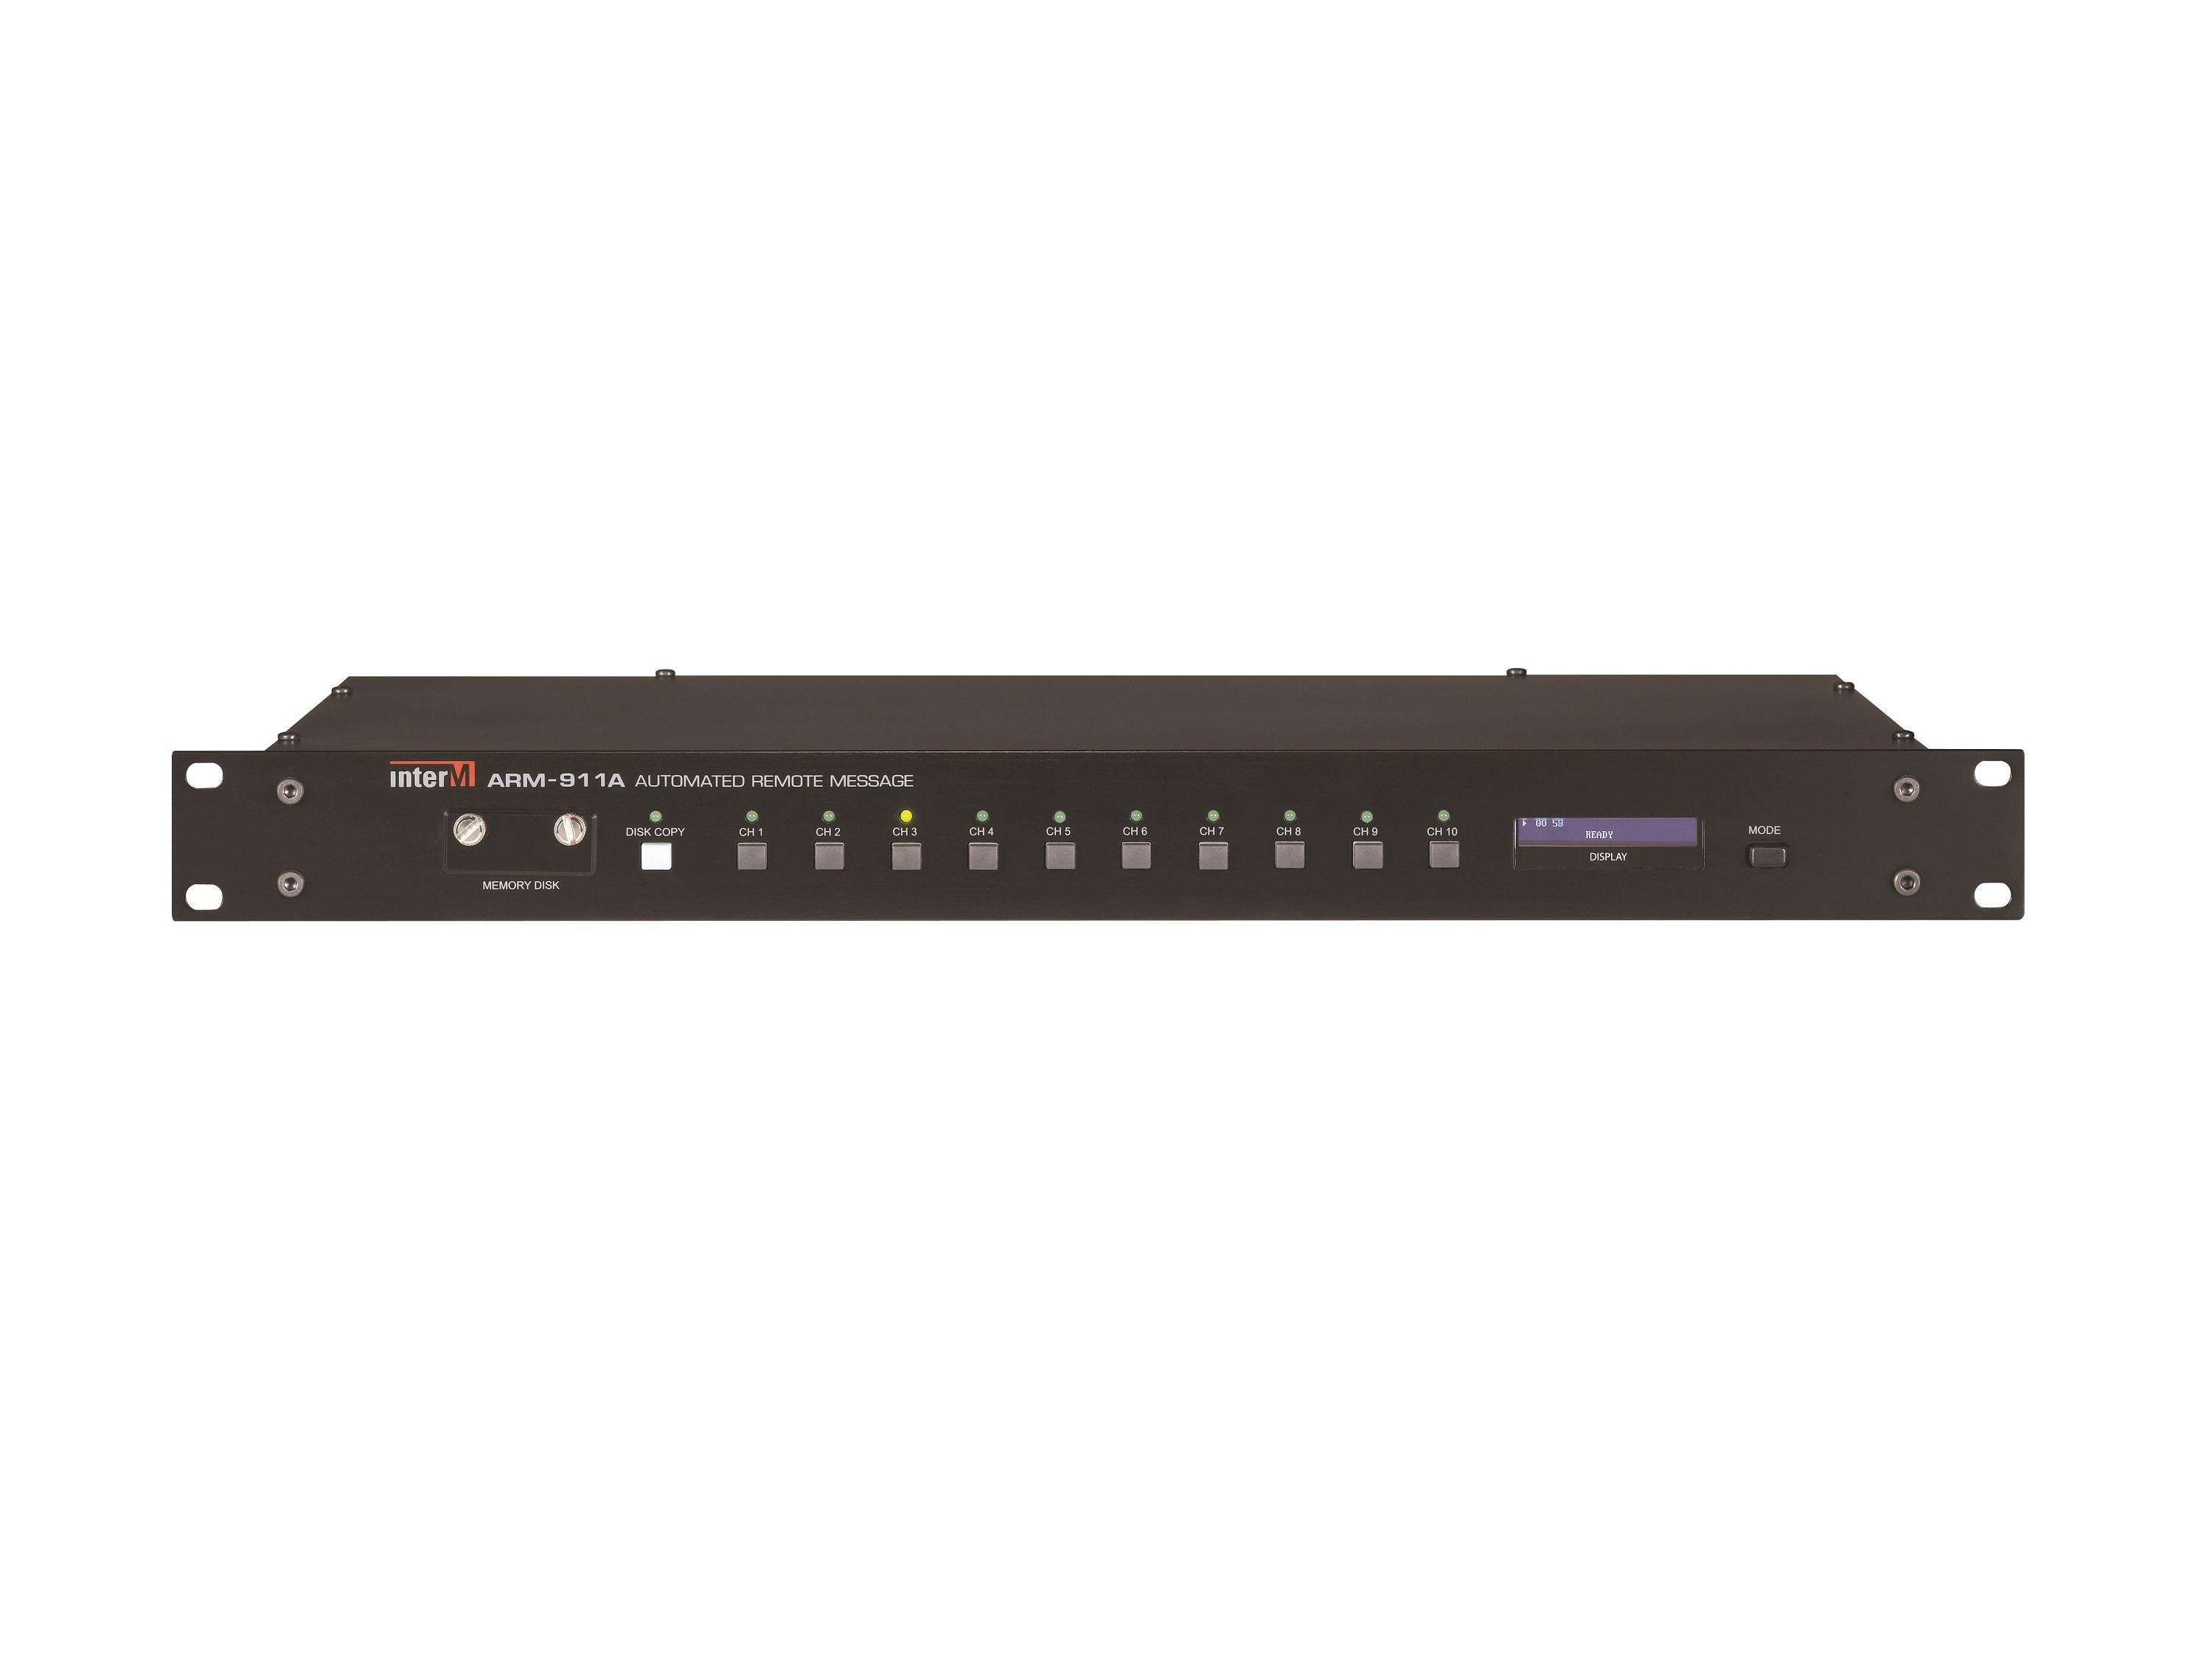 ARM-911A High Performance Highly Versatile Stand-Alone Automated Remote Messaging Controller by Inter-M